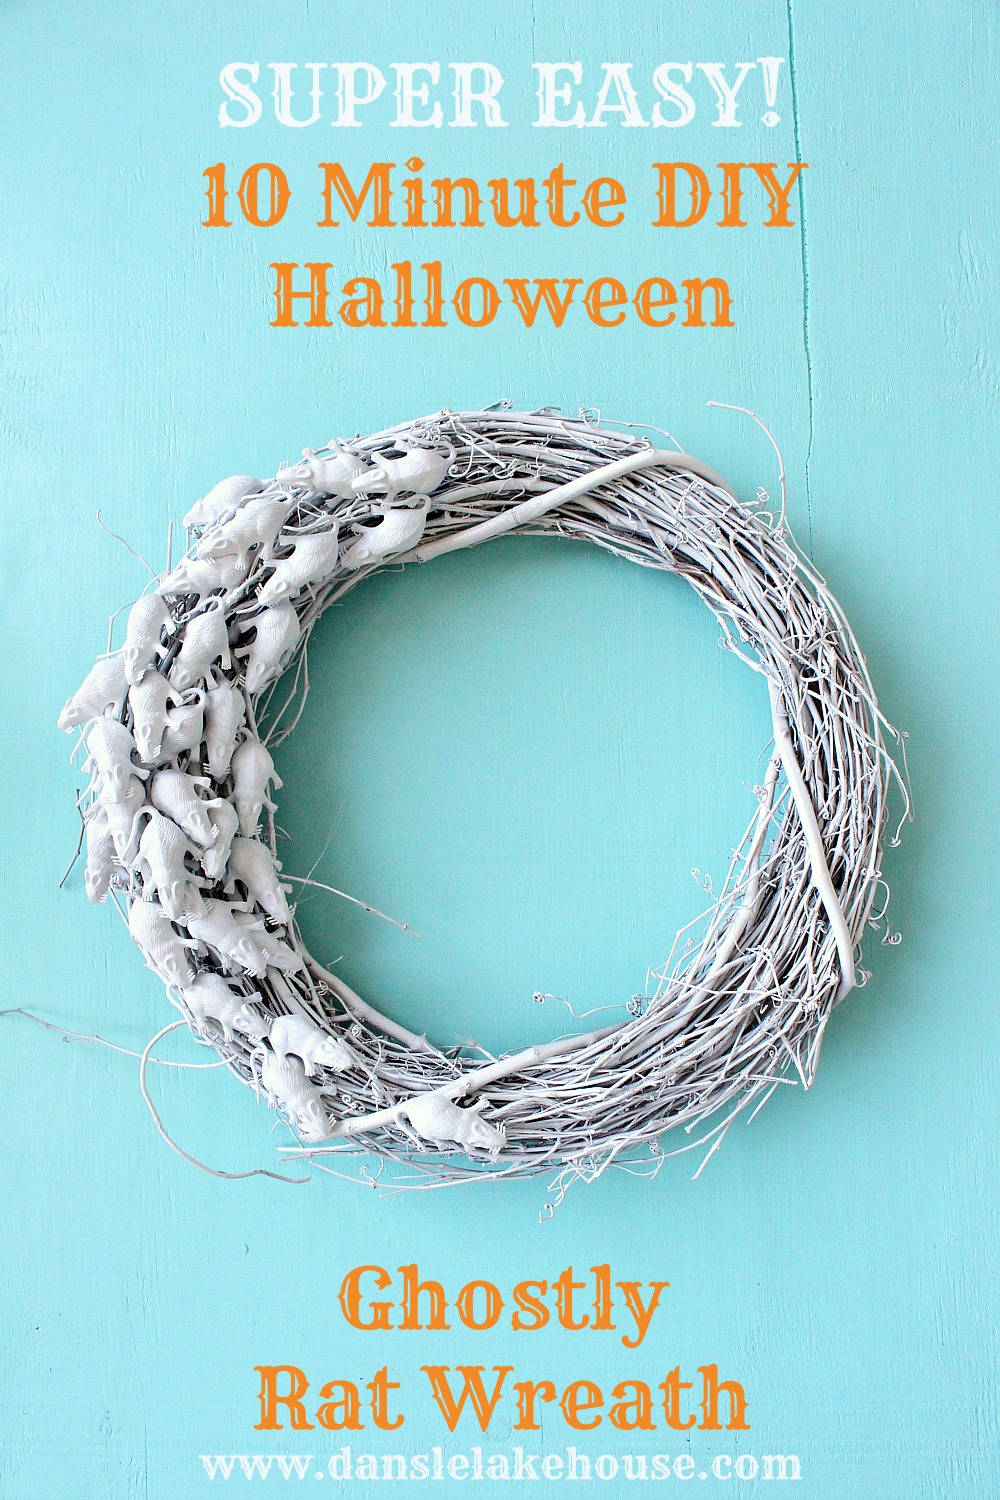 Easy Ghostly Rat Wreath for Halloween - Last Minute Halloween Decor Idea